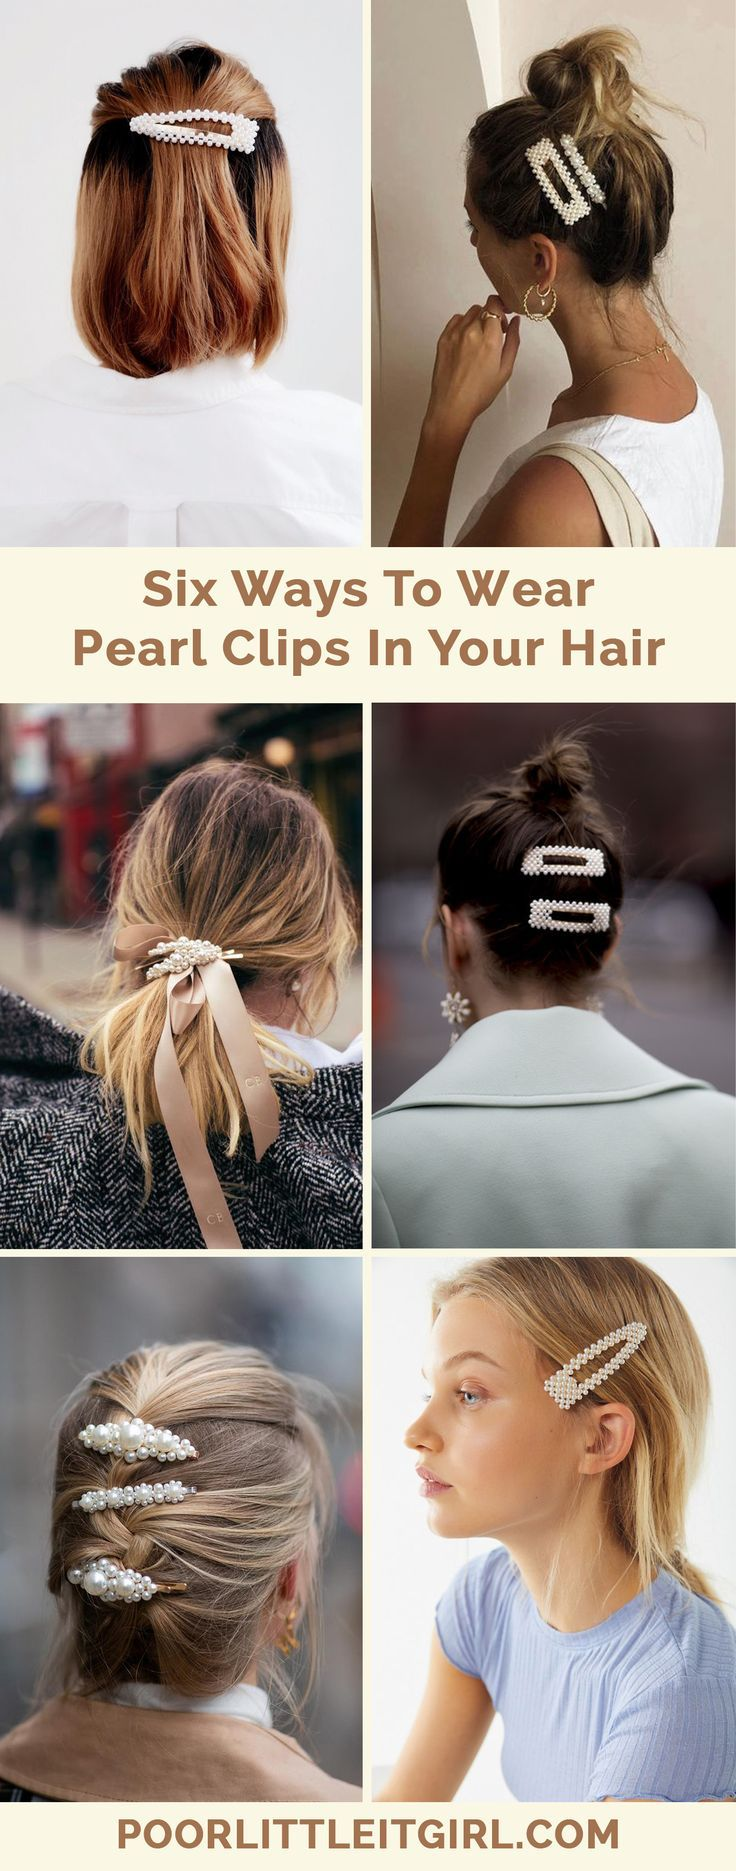 Six Ways To Wear Pearl Clips In Your Hair – Poor Little It Girl